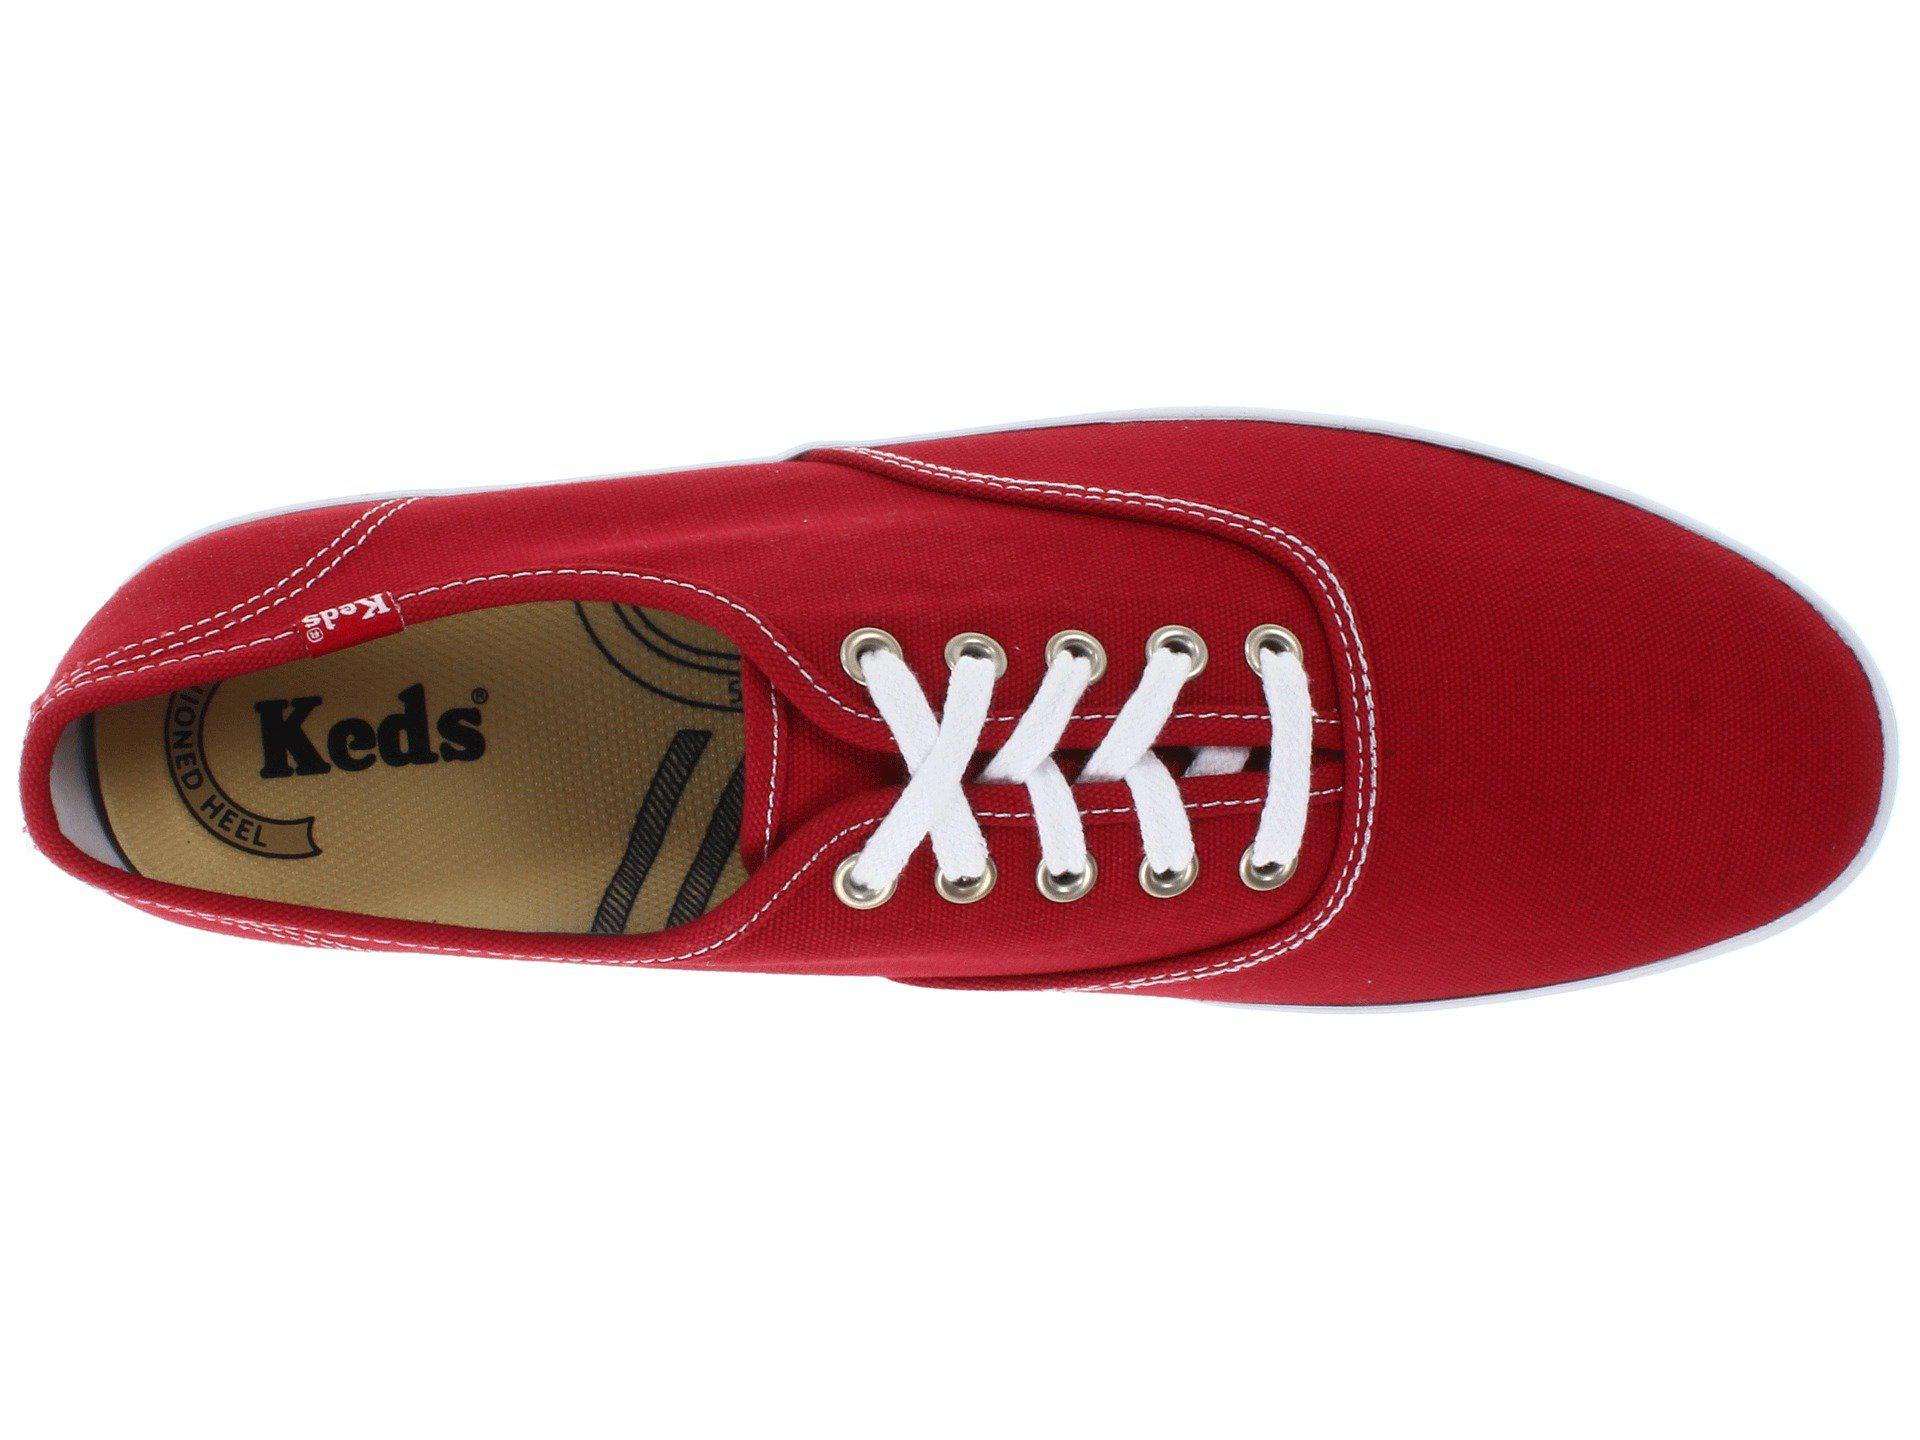 f4ccf34a342 Keds - Red Champion Cvo for Men - Lyst. View fullscreen